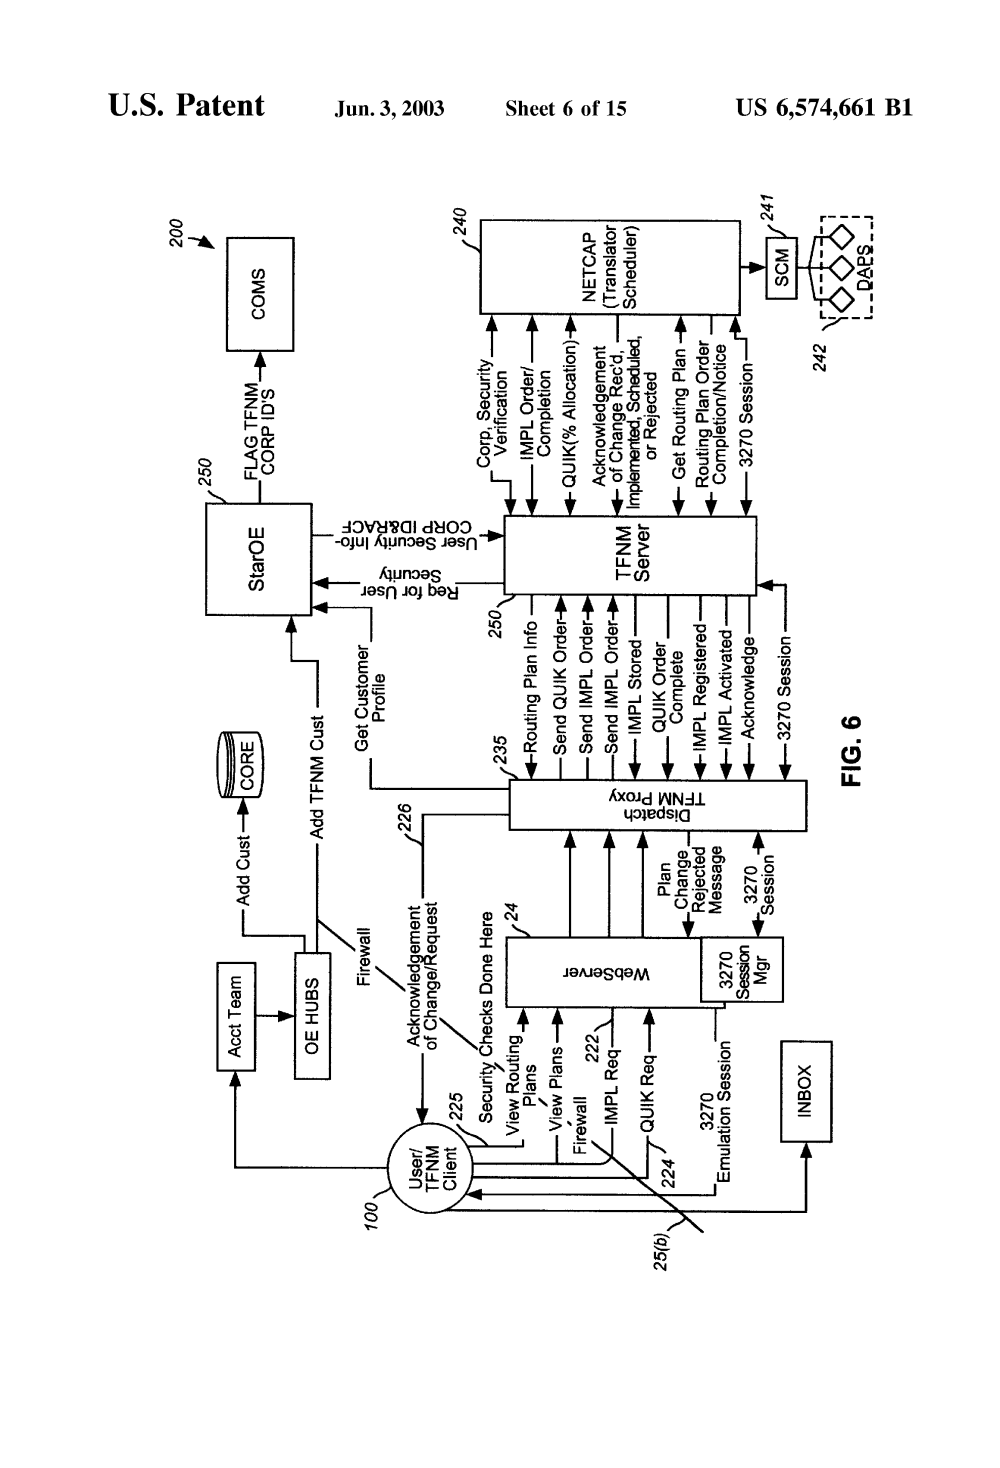 medium resolution of us6574661b1 integrated proxy interface for web based telecommunication toll free network management using a network manager for downloading a call routing